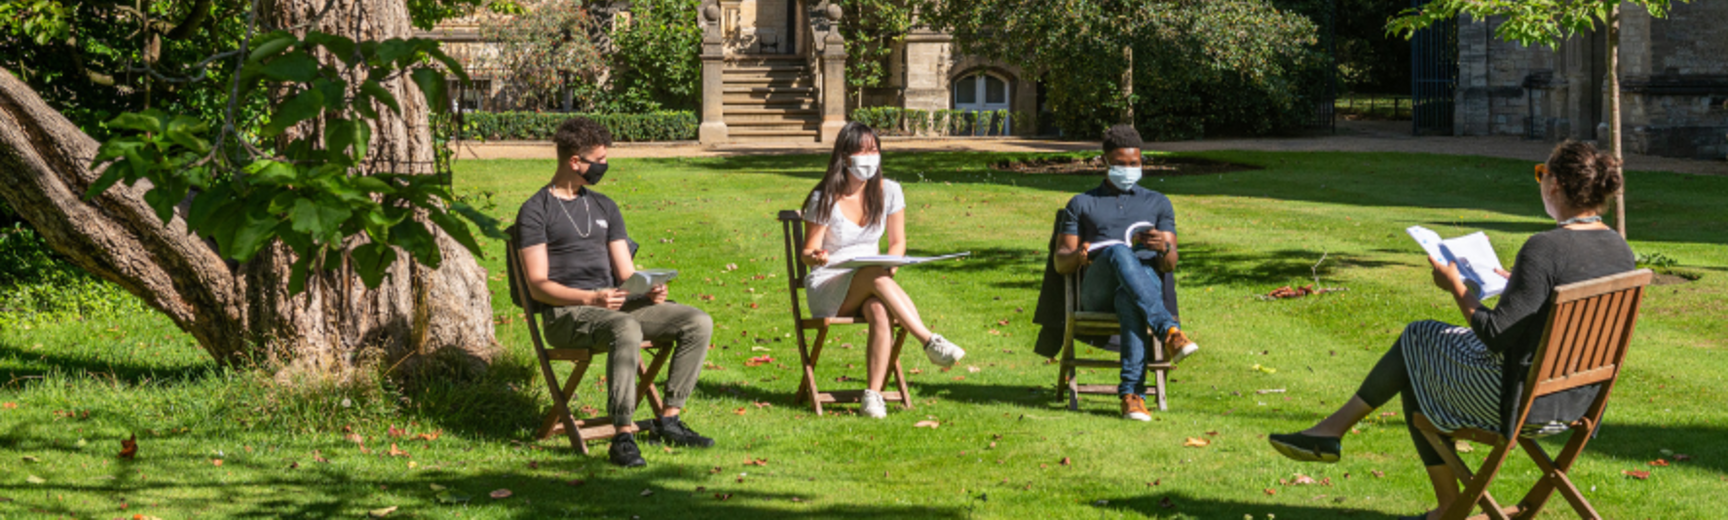 A tutor and 3 students of different ethnicity, all wearing face masks, sit distanced from one other on a college lawn, discussing their work